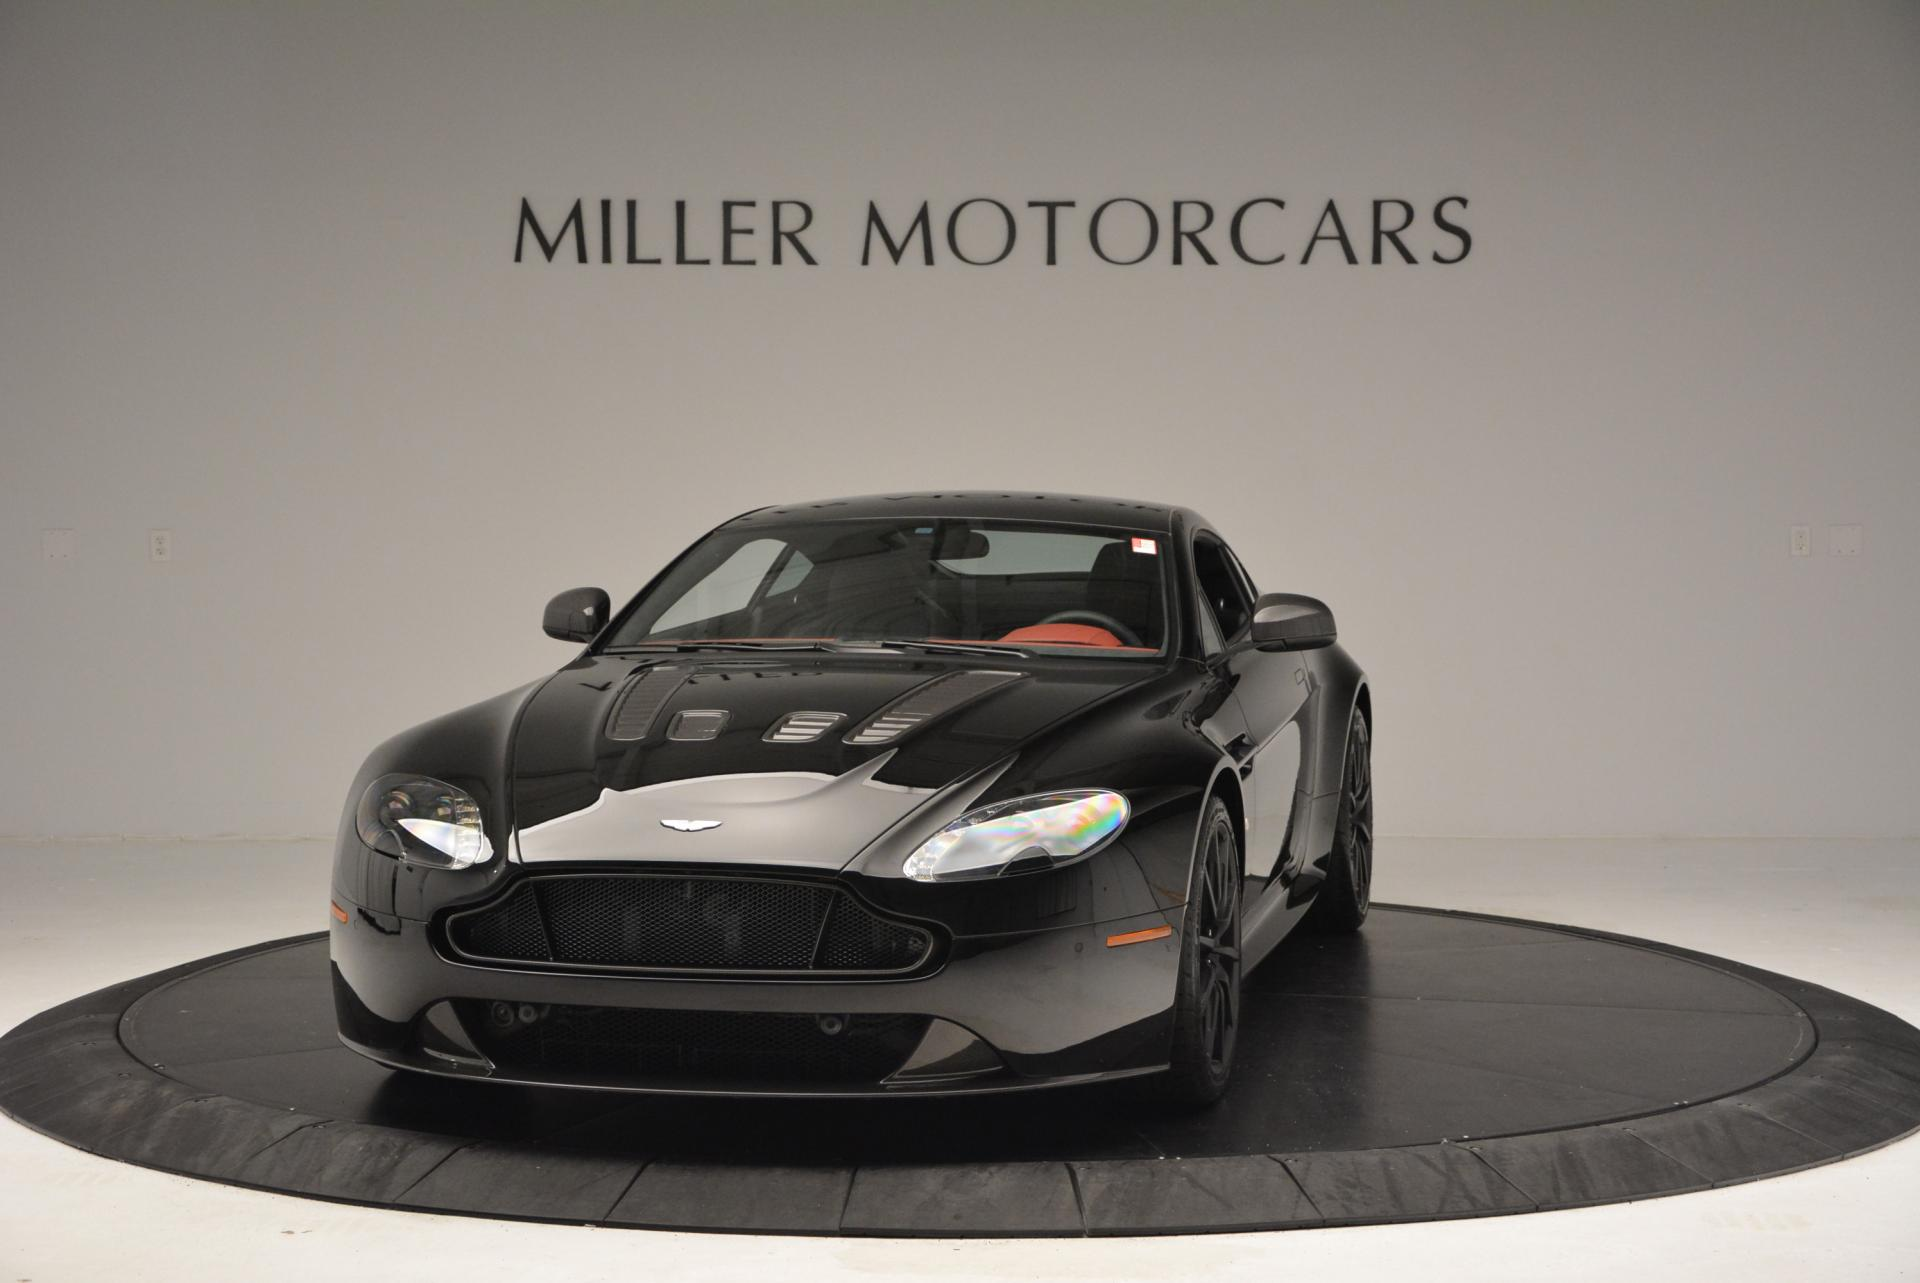 New 2015 Aston Martin V12 Vantage S for sale Sold at Bentley Greenwich in Greenwich CT 06830 1